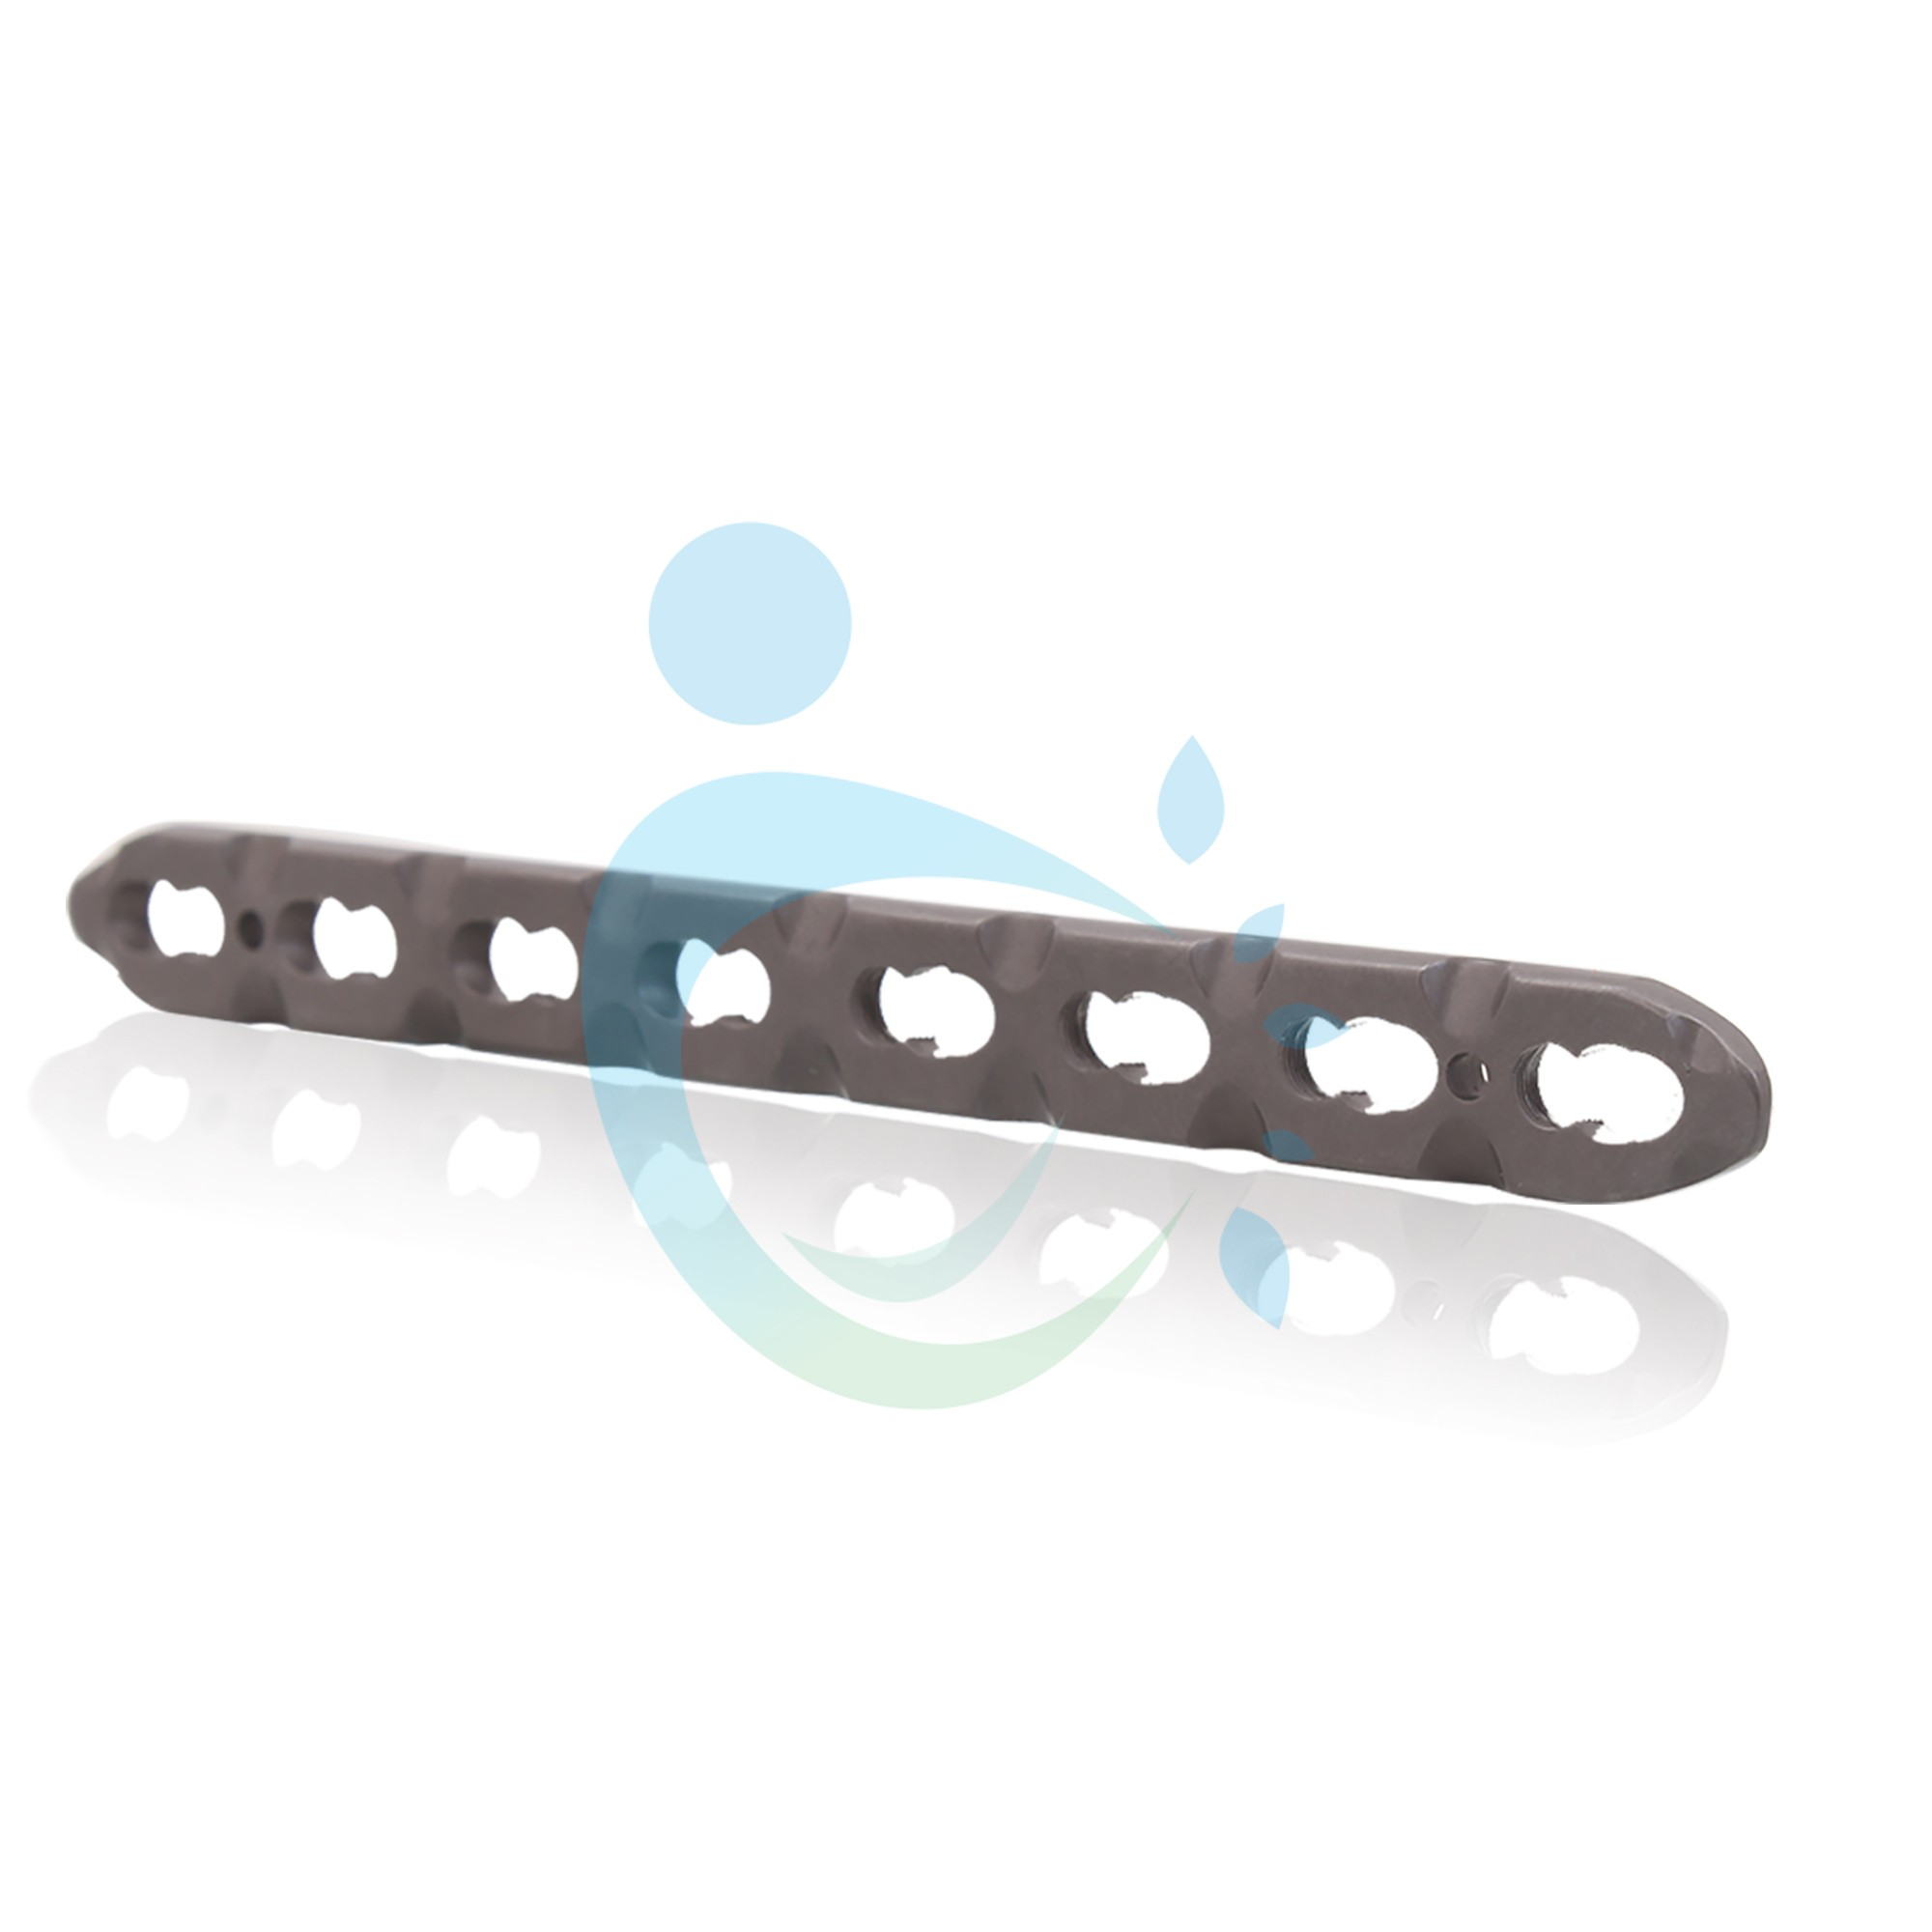 4.5mm Narrow Locking Plate, Tiatnium